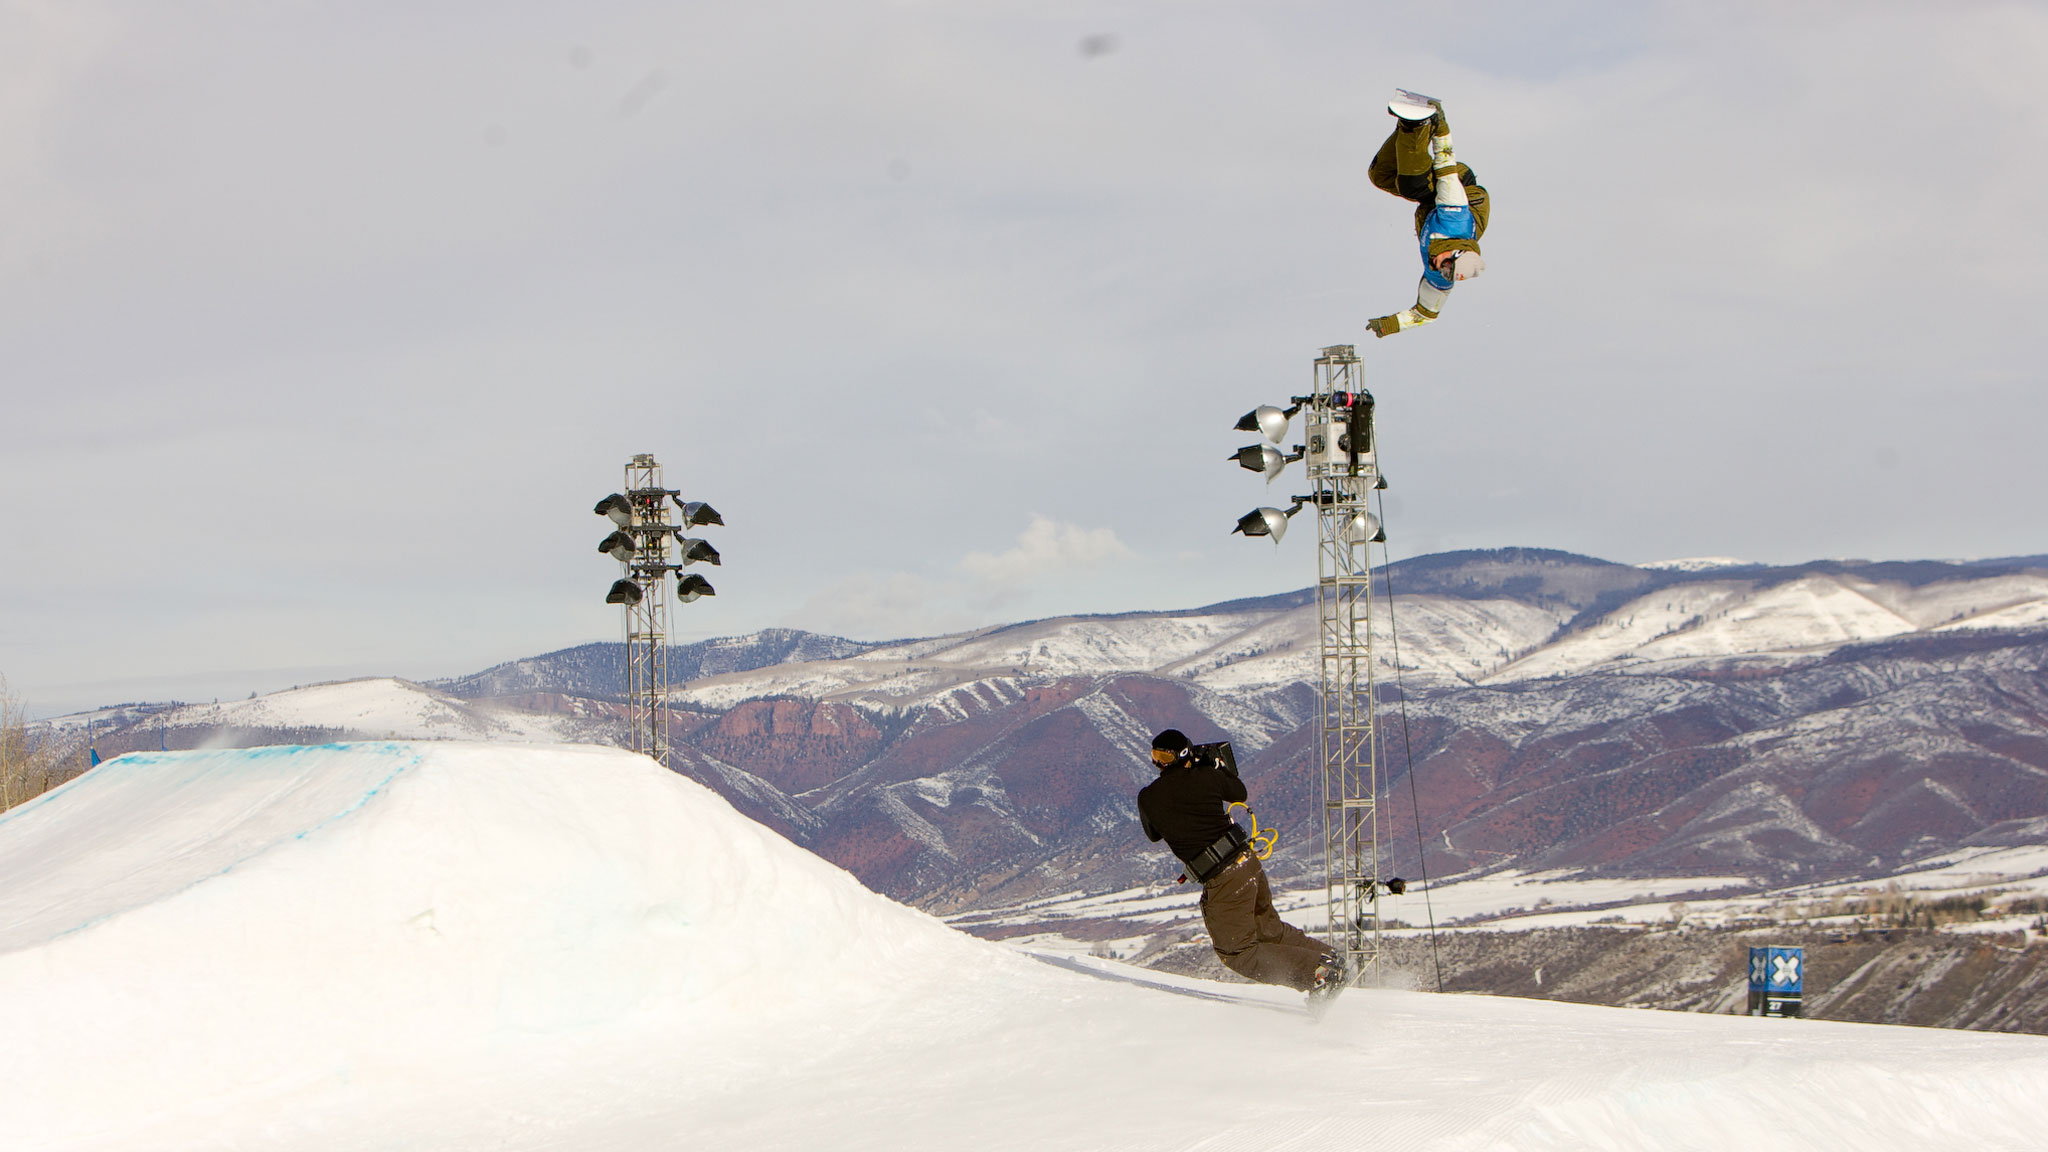 Backcountry freestyle and snowboard film pioneer Travis Rice, pictured here, won slopestyle bronze at X Games in 2005.